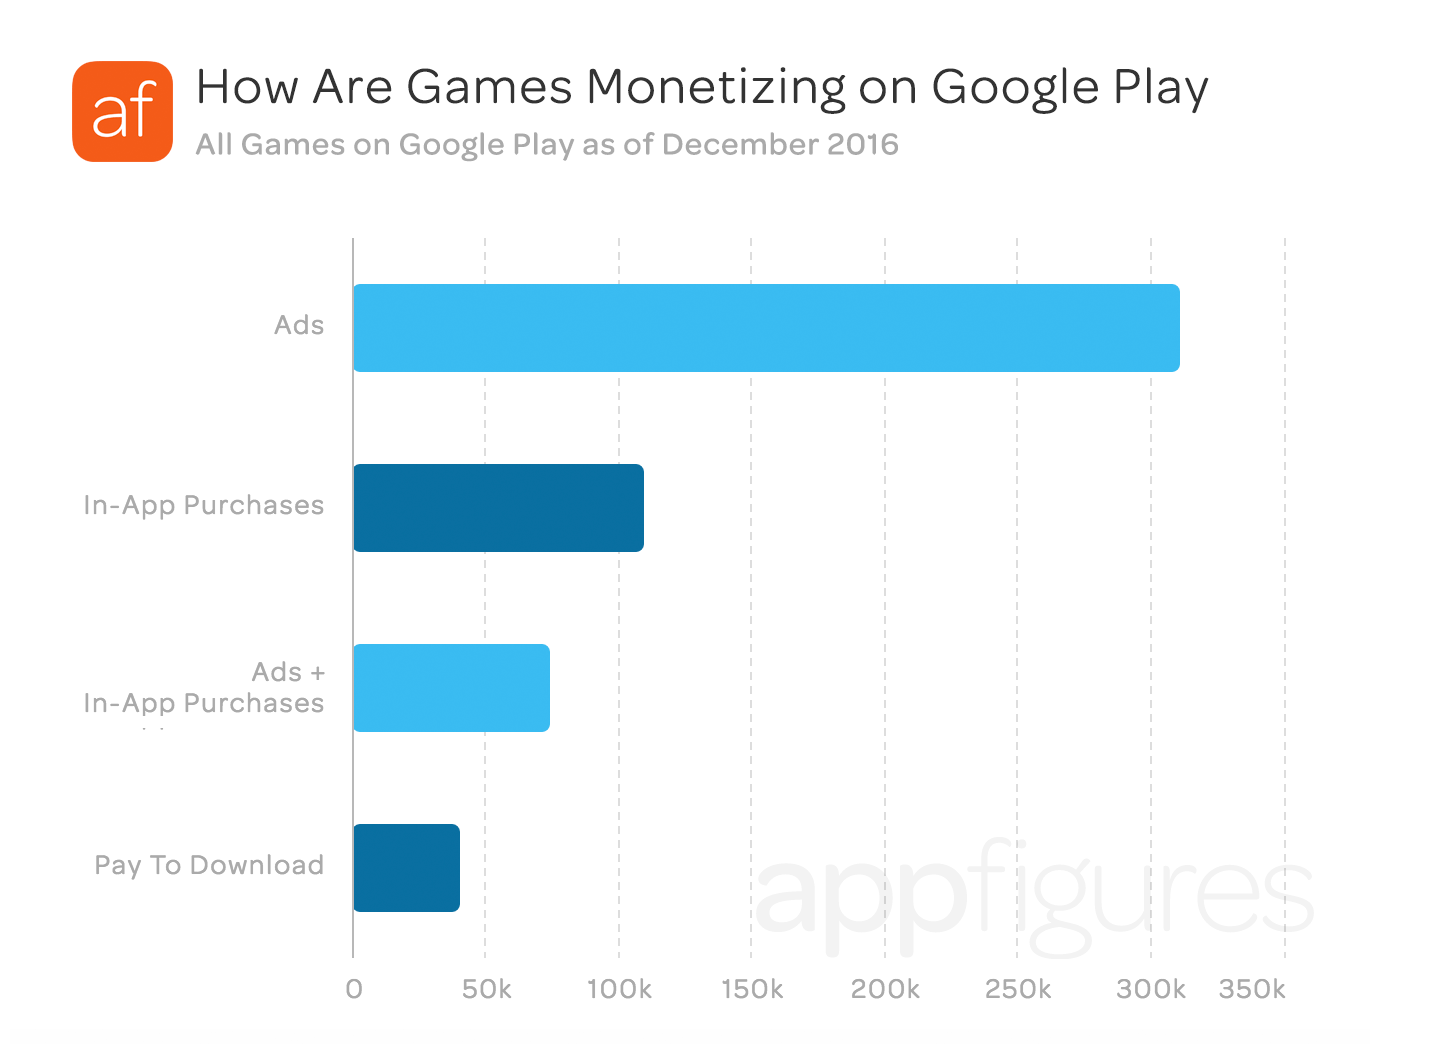 The top 8 mobile SDKs used in all Android games